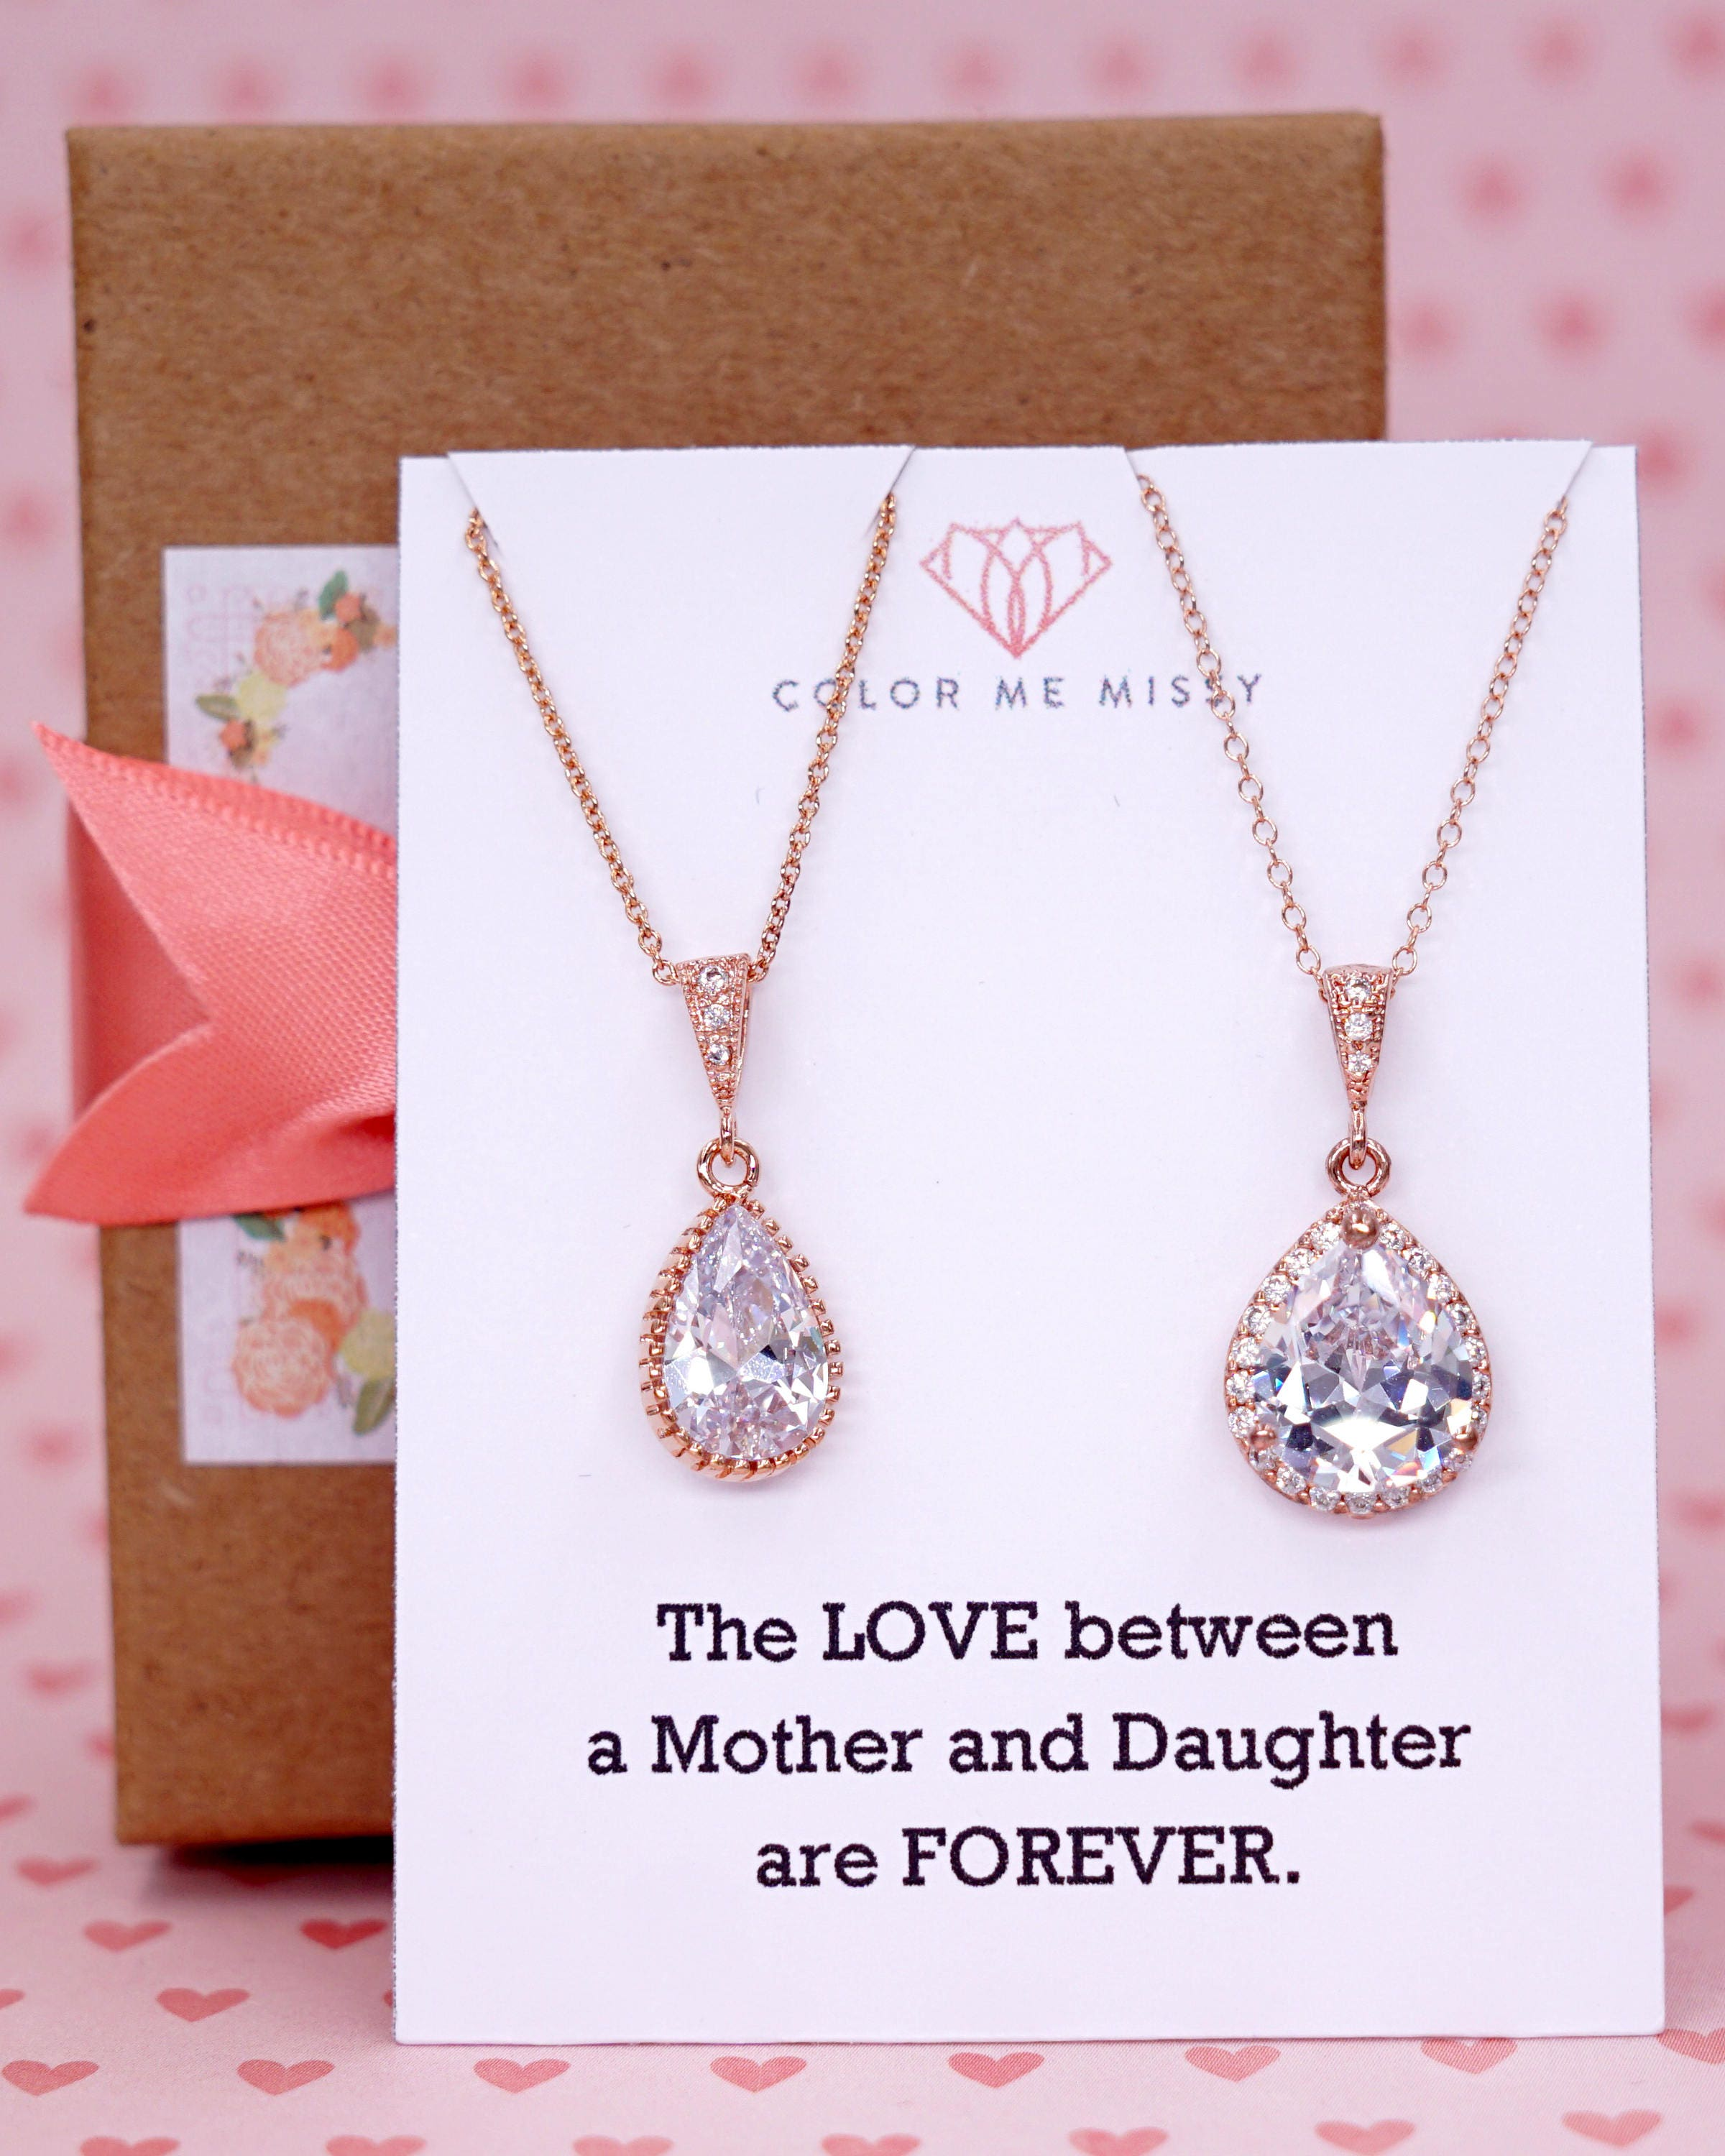 rose gold luxe cubic zirconia teardrop necklace weddings brides bridesmaid bridal shower gifts mother of groom bride n42 n62